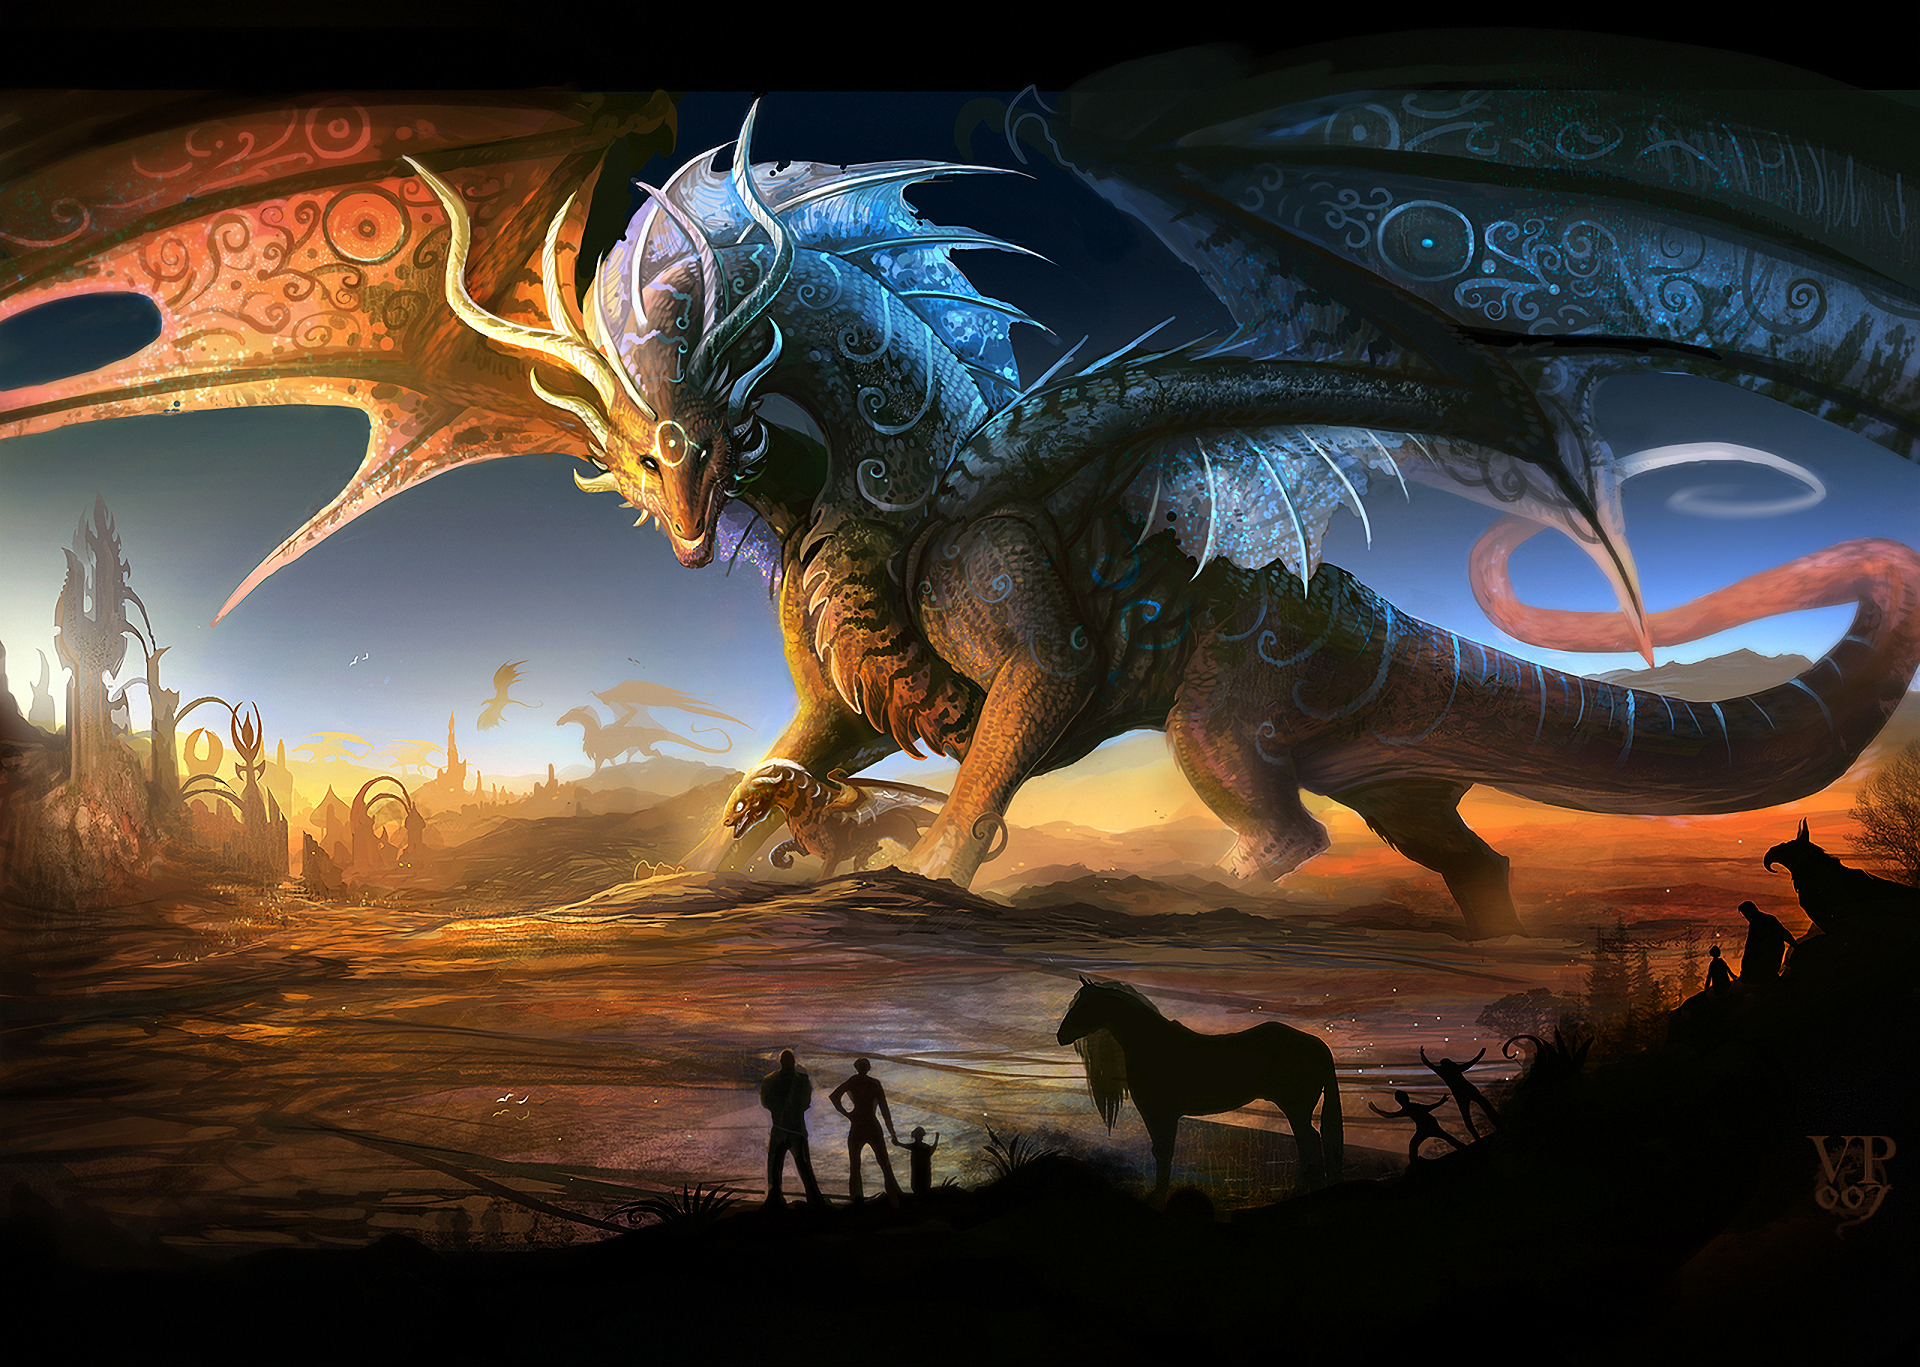 Dragon Hd Wallpaper Background Image 1920x1367 Id